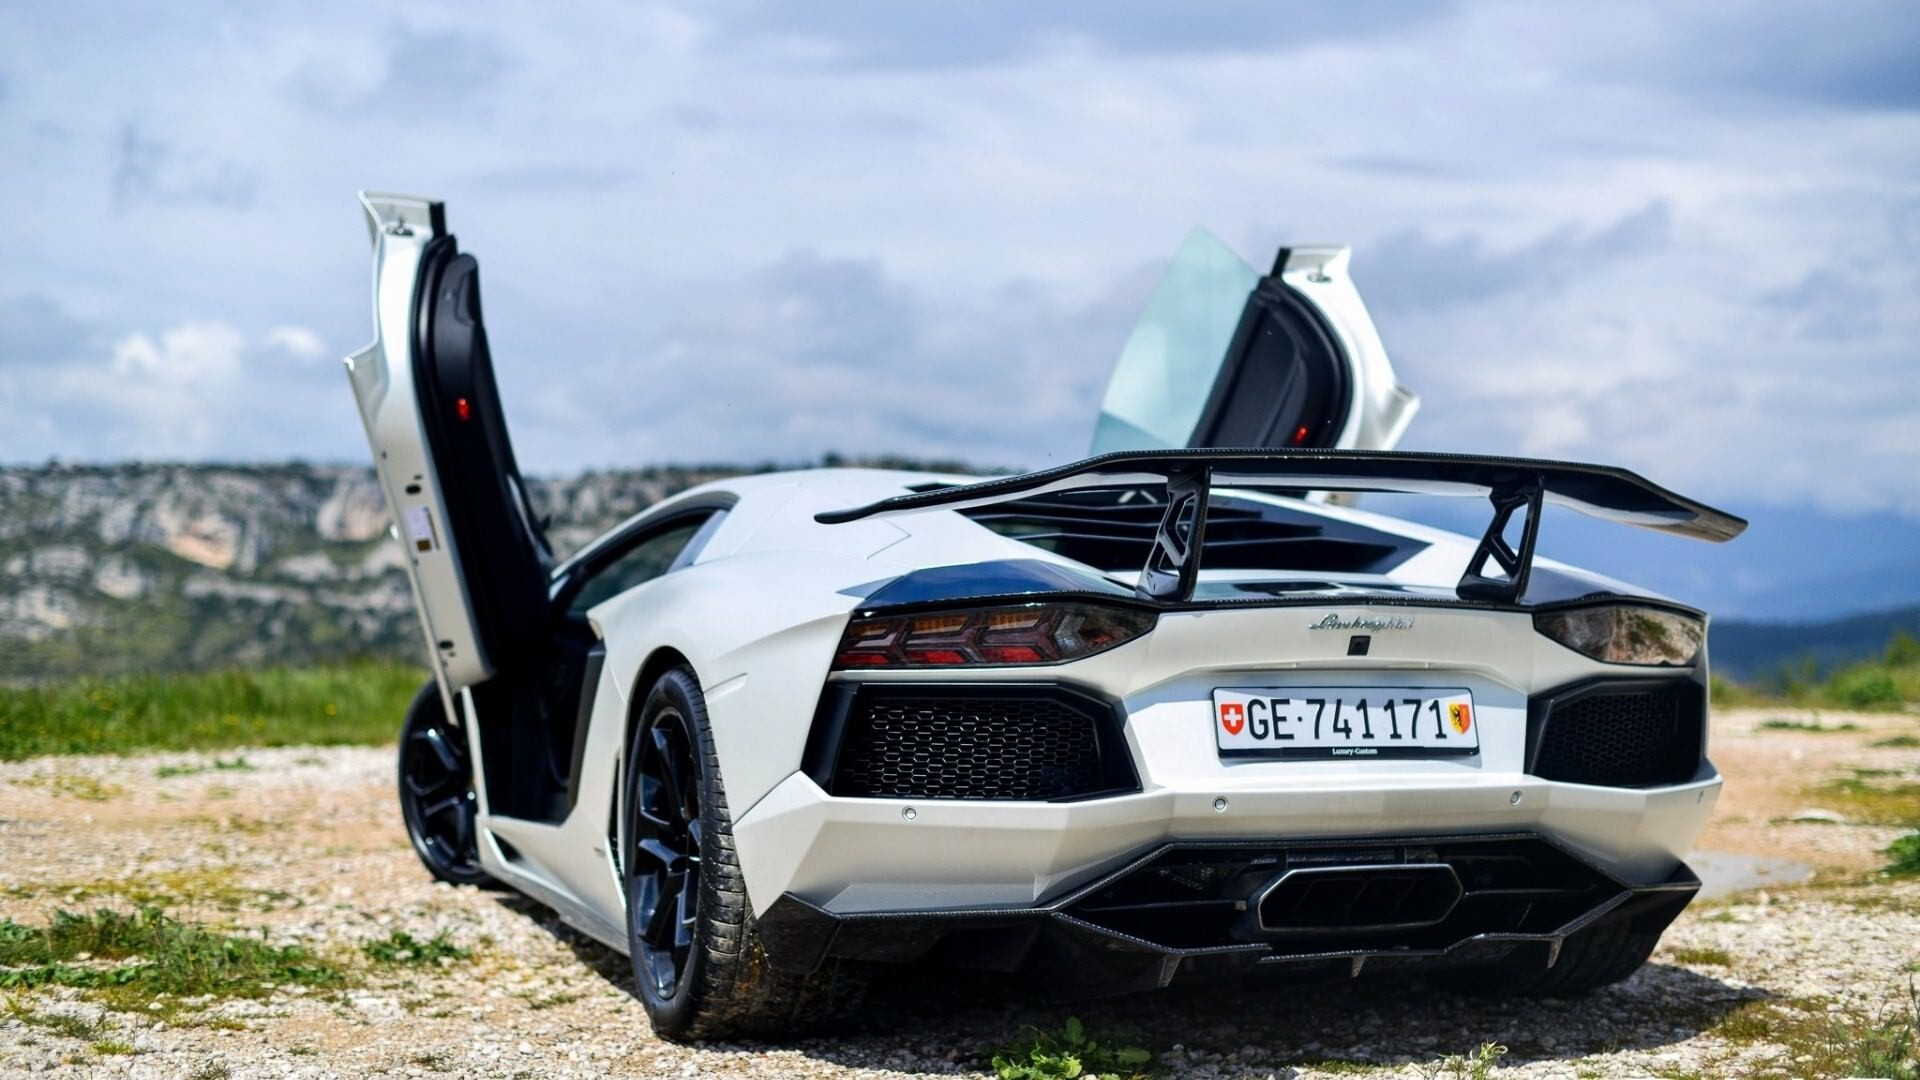 ... Photos - Lamborghini Aventador White Wallpaper Hd Love Quotes For Her